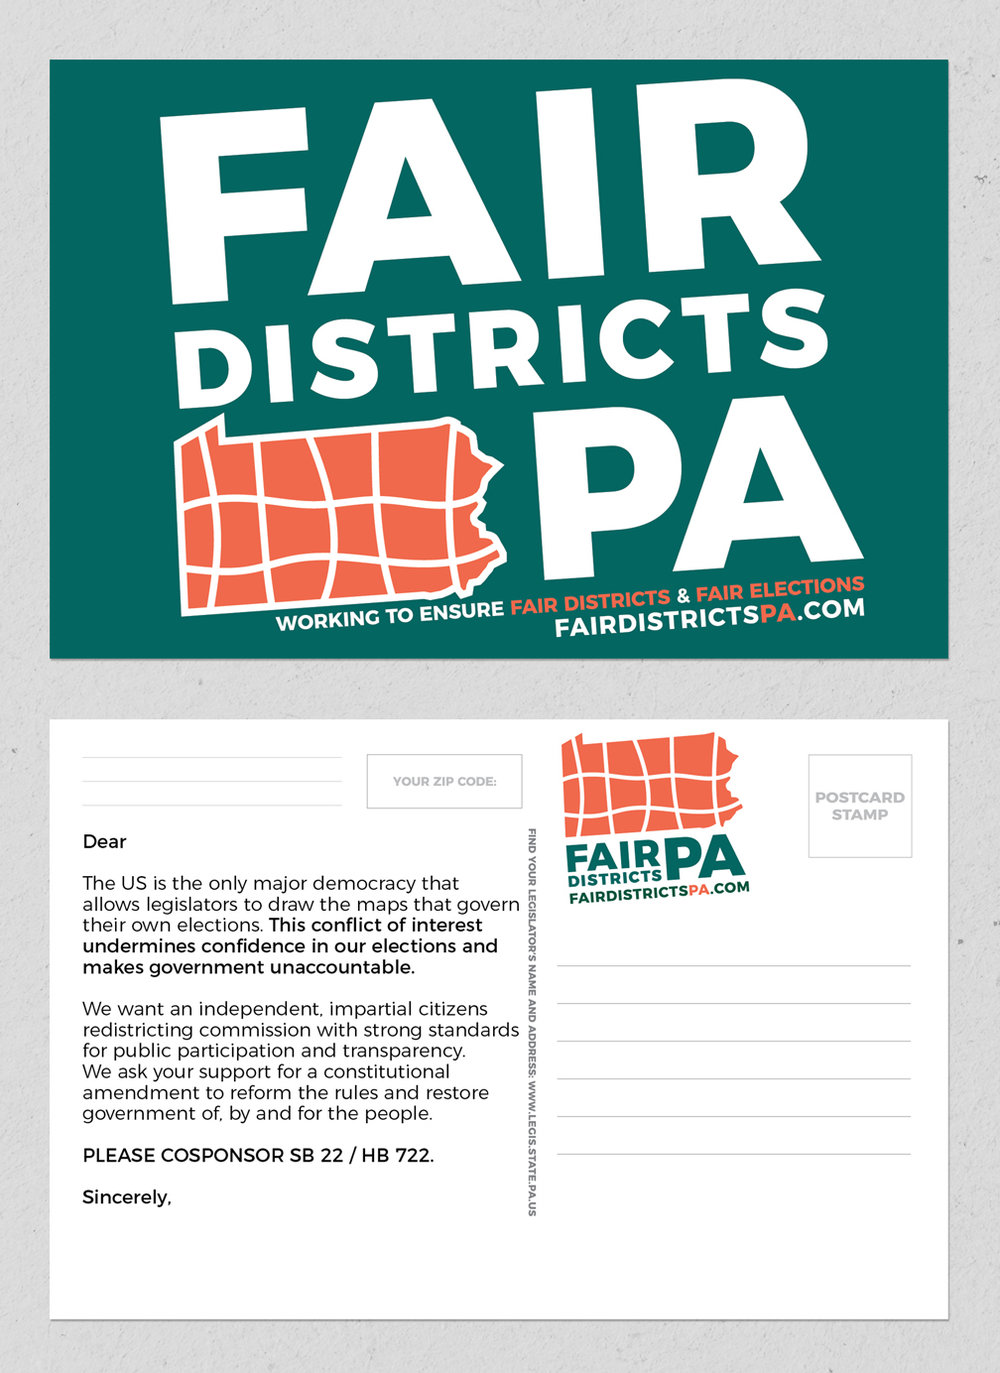 CONTACT YOUR STATE REPRESENTATIVE • 4 x 6 POSTCARD  CLIENT:  FAIR DISTRICTS PA  +  LEAGUE OF WOMENS VOTERS  BRIEF: Create a postcard that constituents in Pennsylvania could mail their state representative to urge them to co-sponsor SB 22/HB 722 bills to end Gerrymandering in Pennsylvania. PLACEMENT: Handed out at most Fair Districts PA events throughout Pennsylvania. WORK: Adobe InDesign. Co-wrote copy with chair and co-founder, Carol Kuniholm. Used the large Zip Code area to assist representatives with identifying where the postcards were coming from.